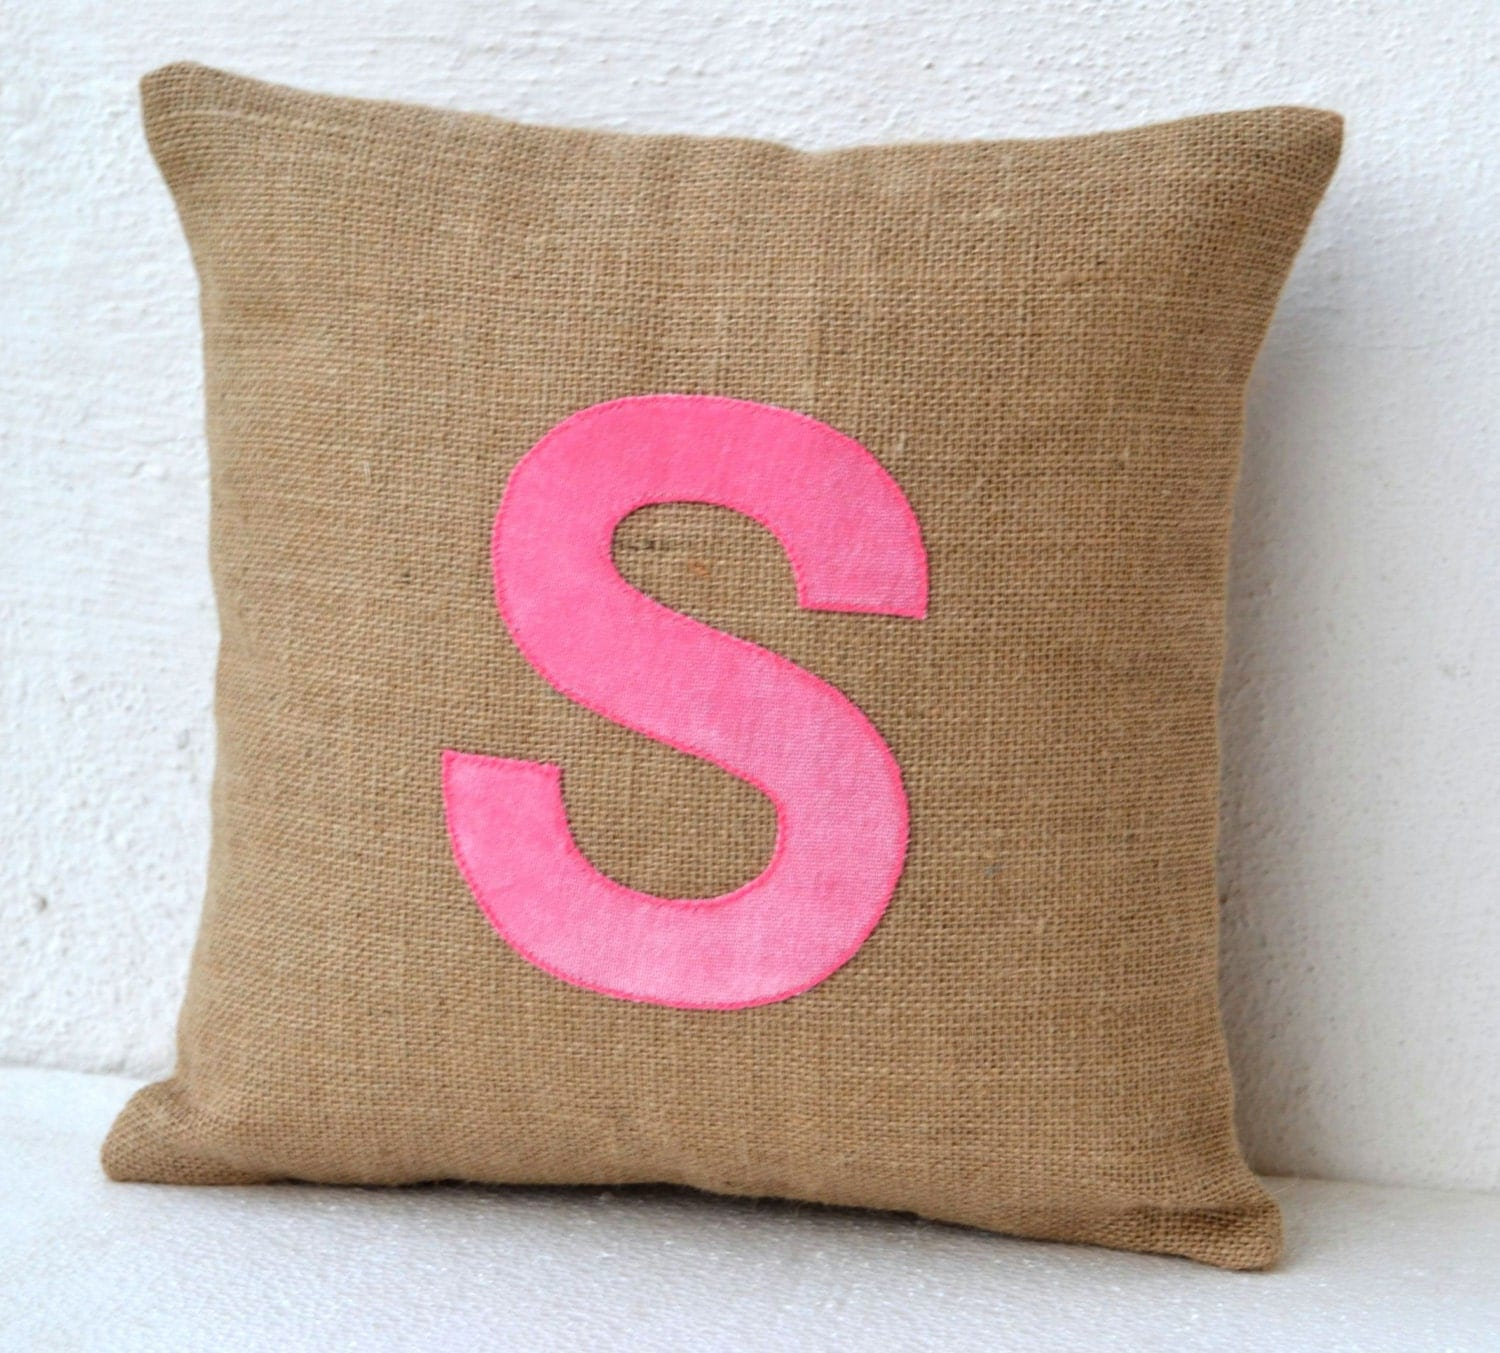 Decorative Pillows With Monogram : Customized Monogram throw pillow Burlap pillow by AmoreBeaute